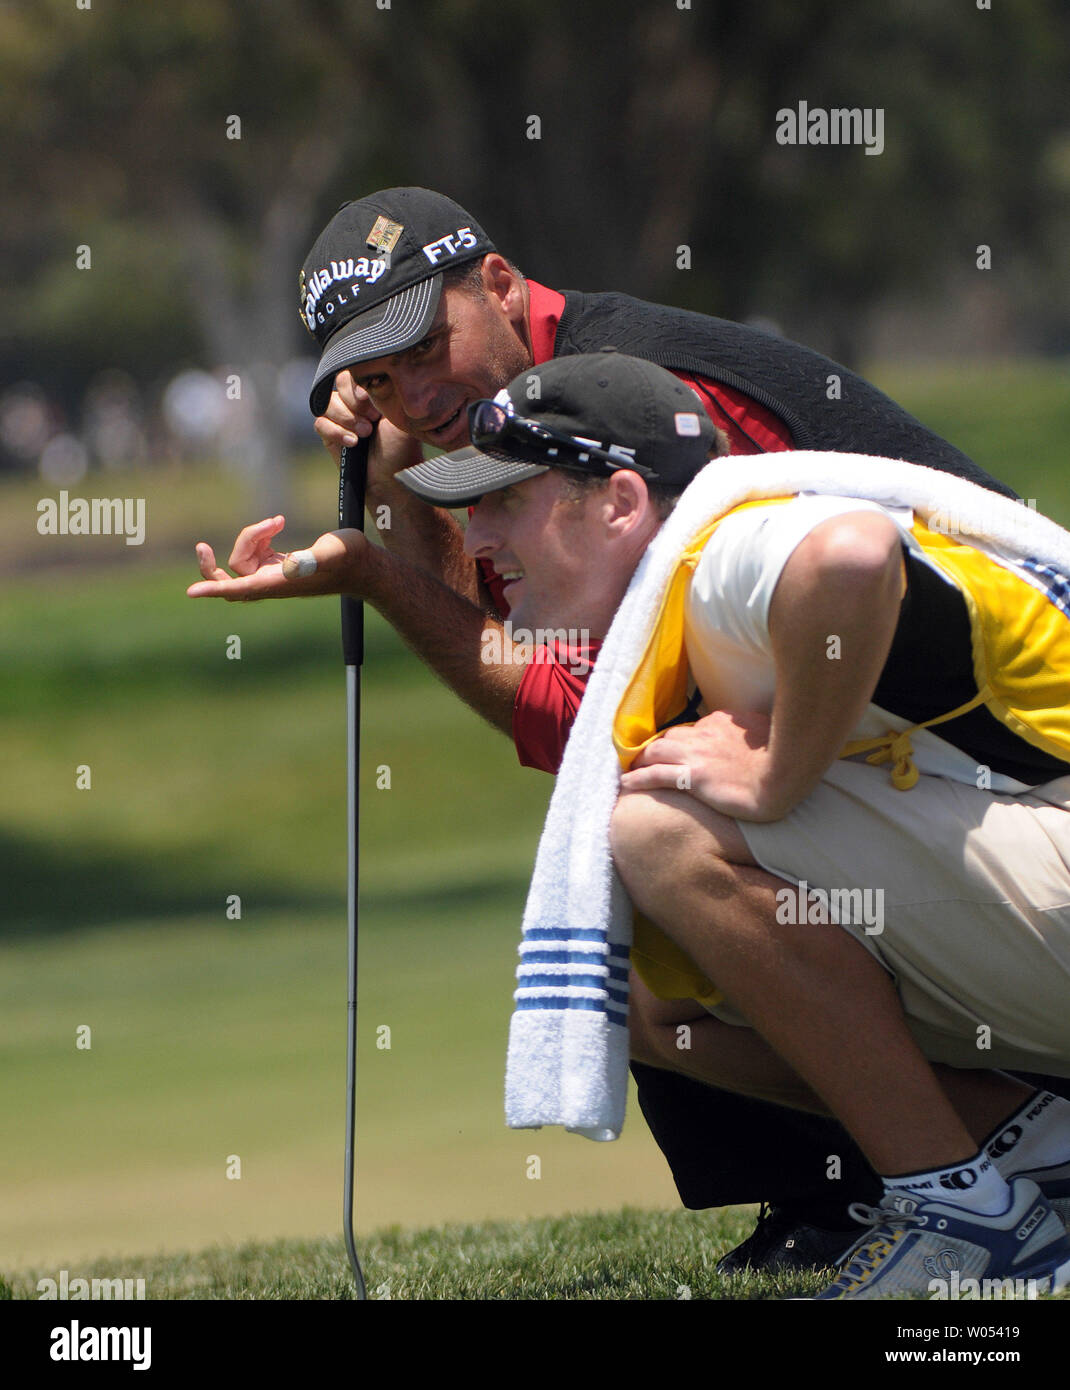 Rocco Mediate (L) and caddie Matt Achatz discuss the sudden death shot on the 7th hole of the playoff round of the US Open at Torrey Pines Golf Course in San Diego on June 16, 2008. Tiger Woods went on to win the 108th US Open. (UPI Photo/Earl S. Cryer) Stock Photo